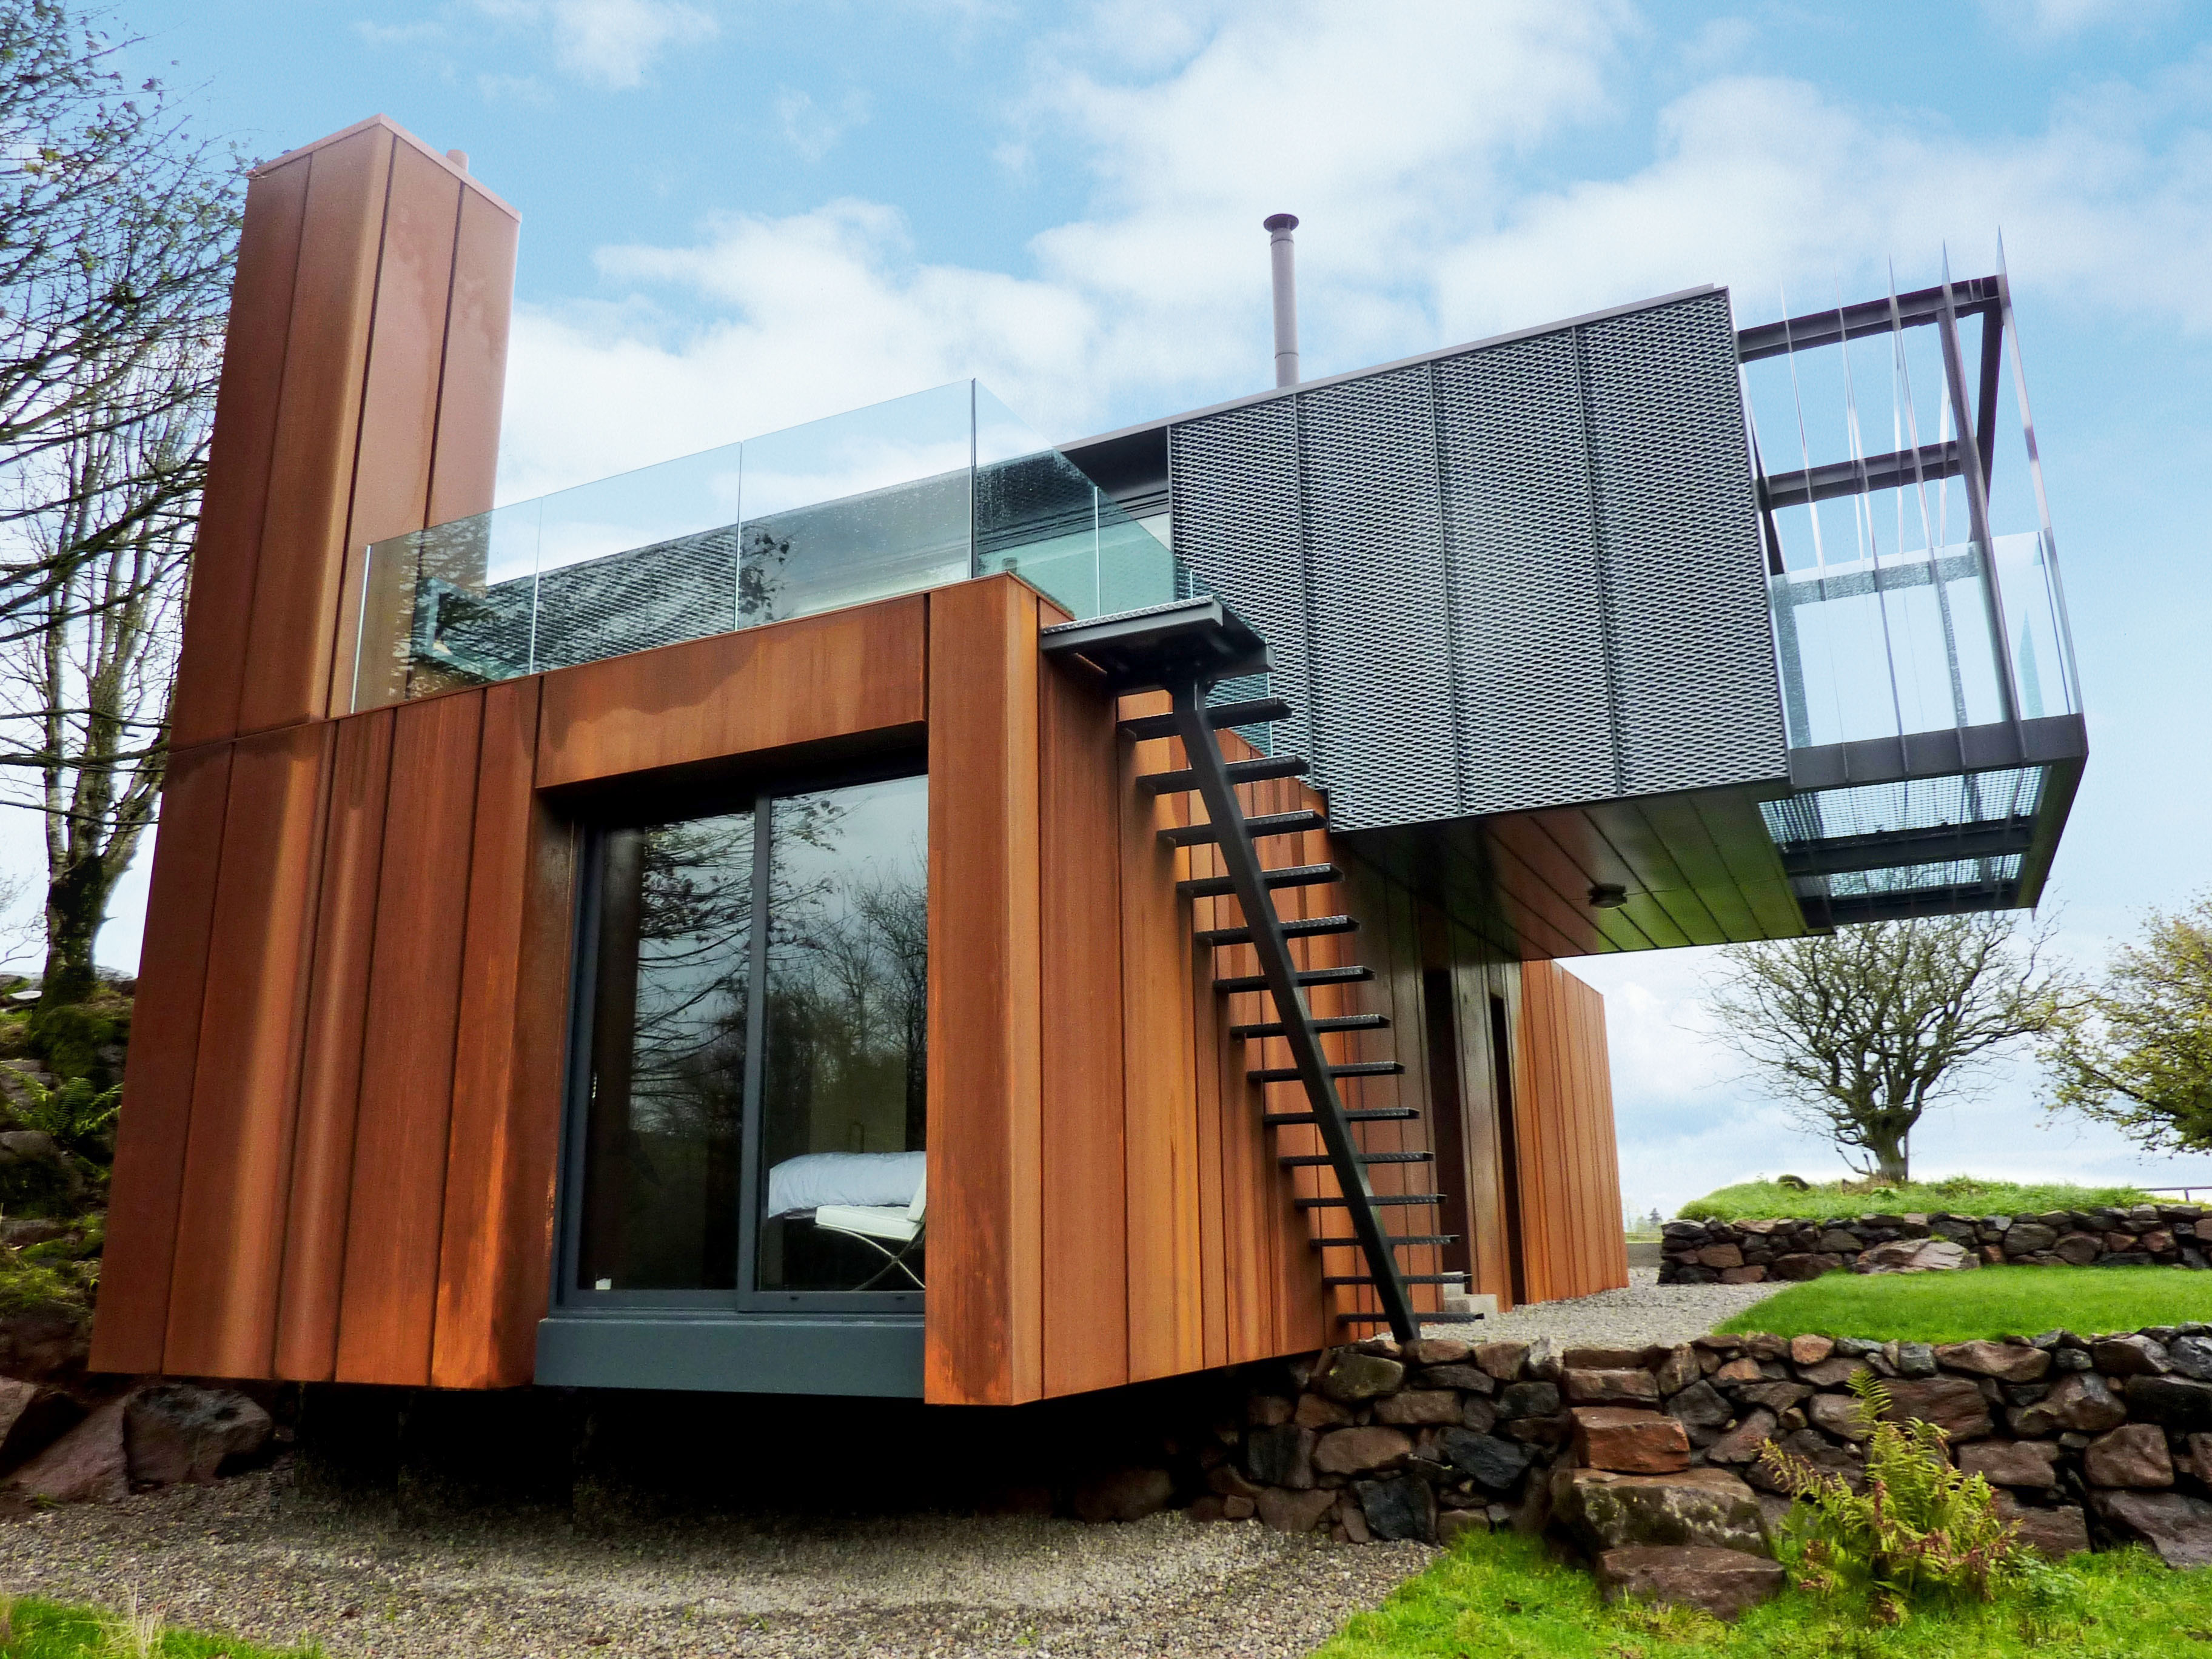 container house design building shipping container homes designs living house plans iranews cool container WLQZHJB